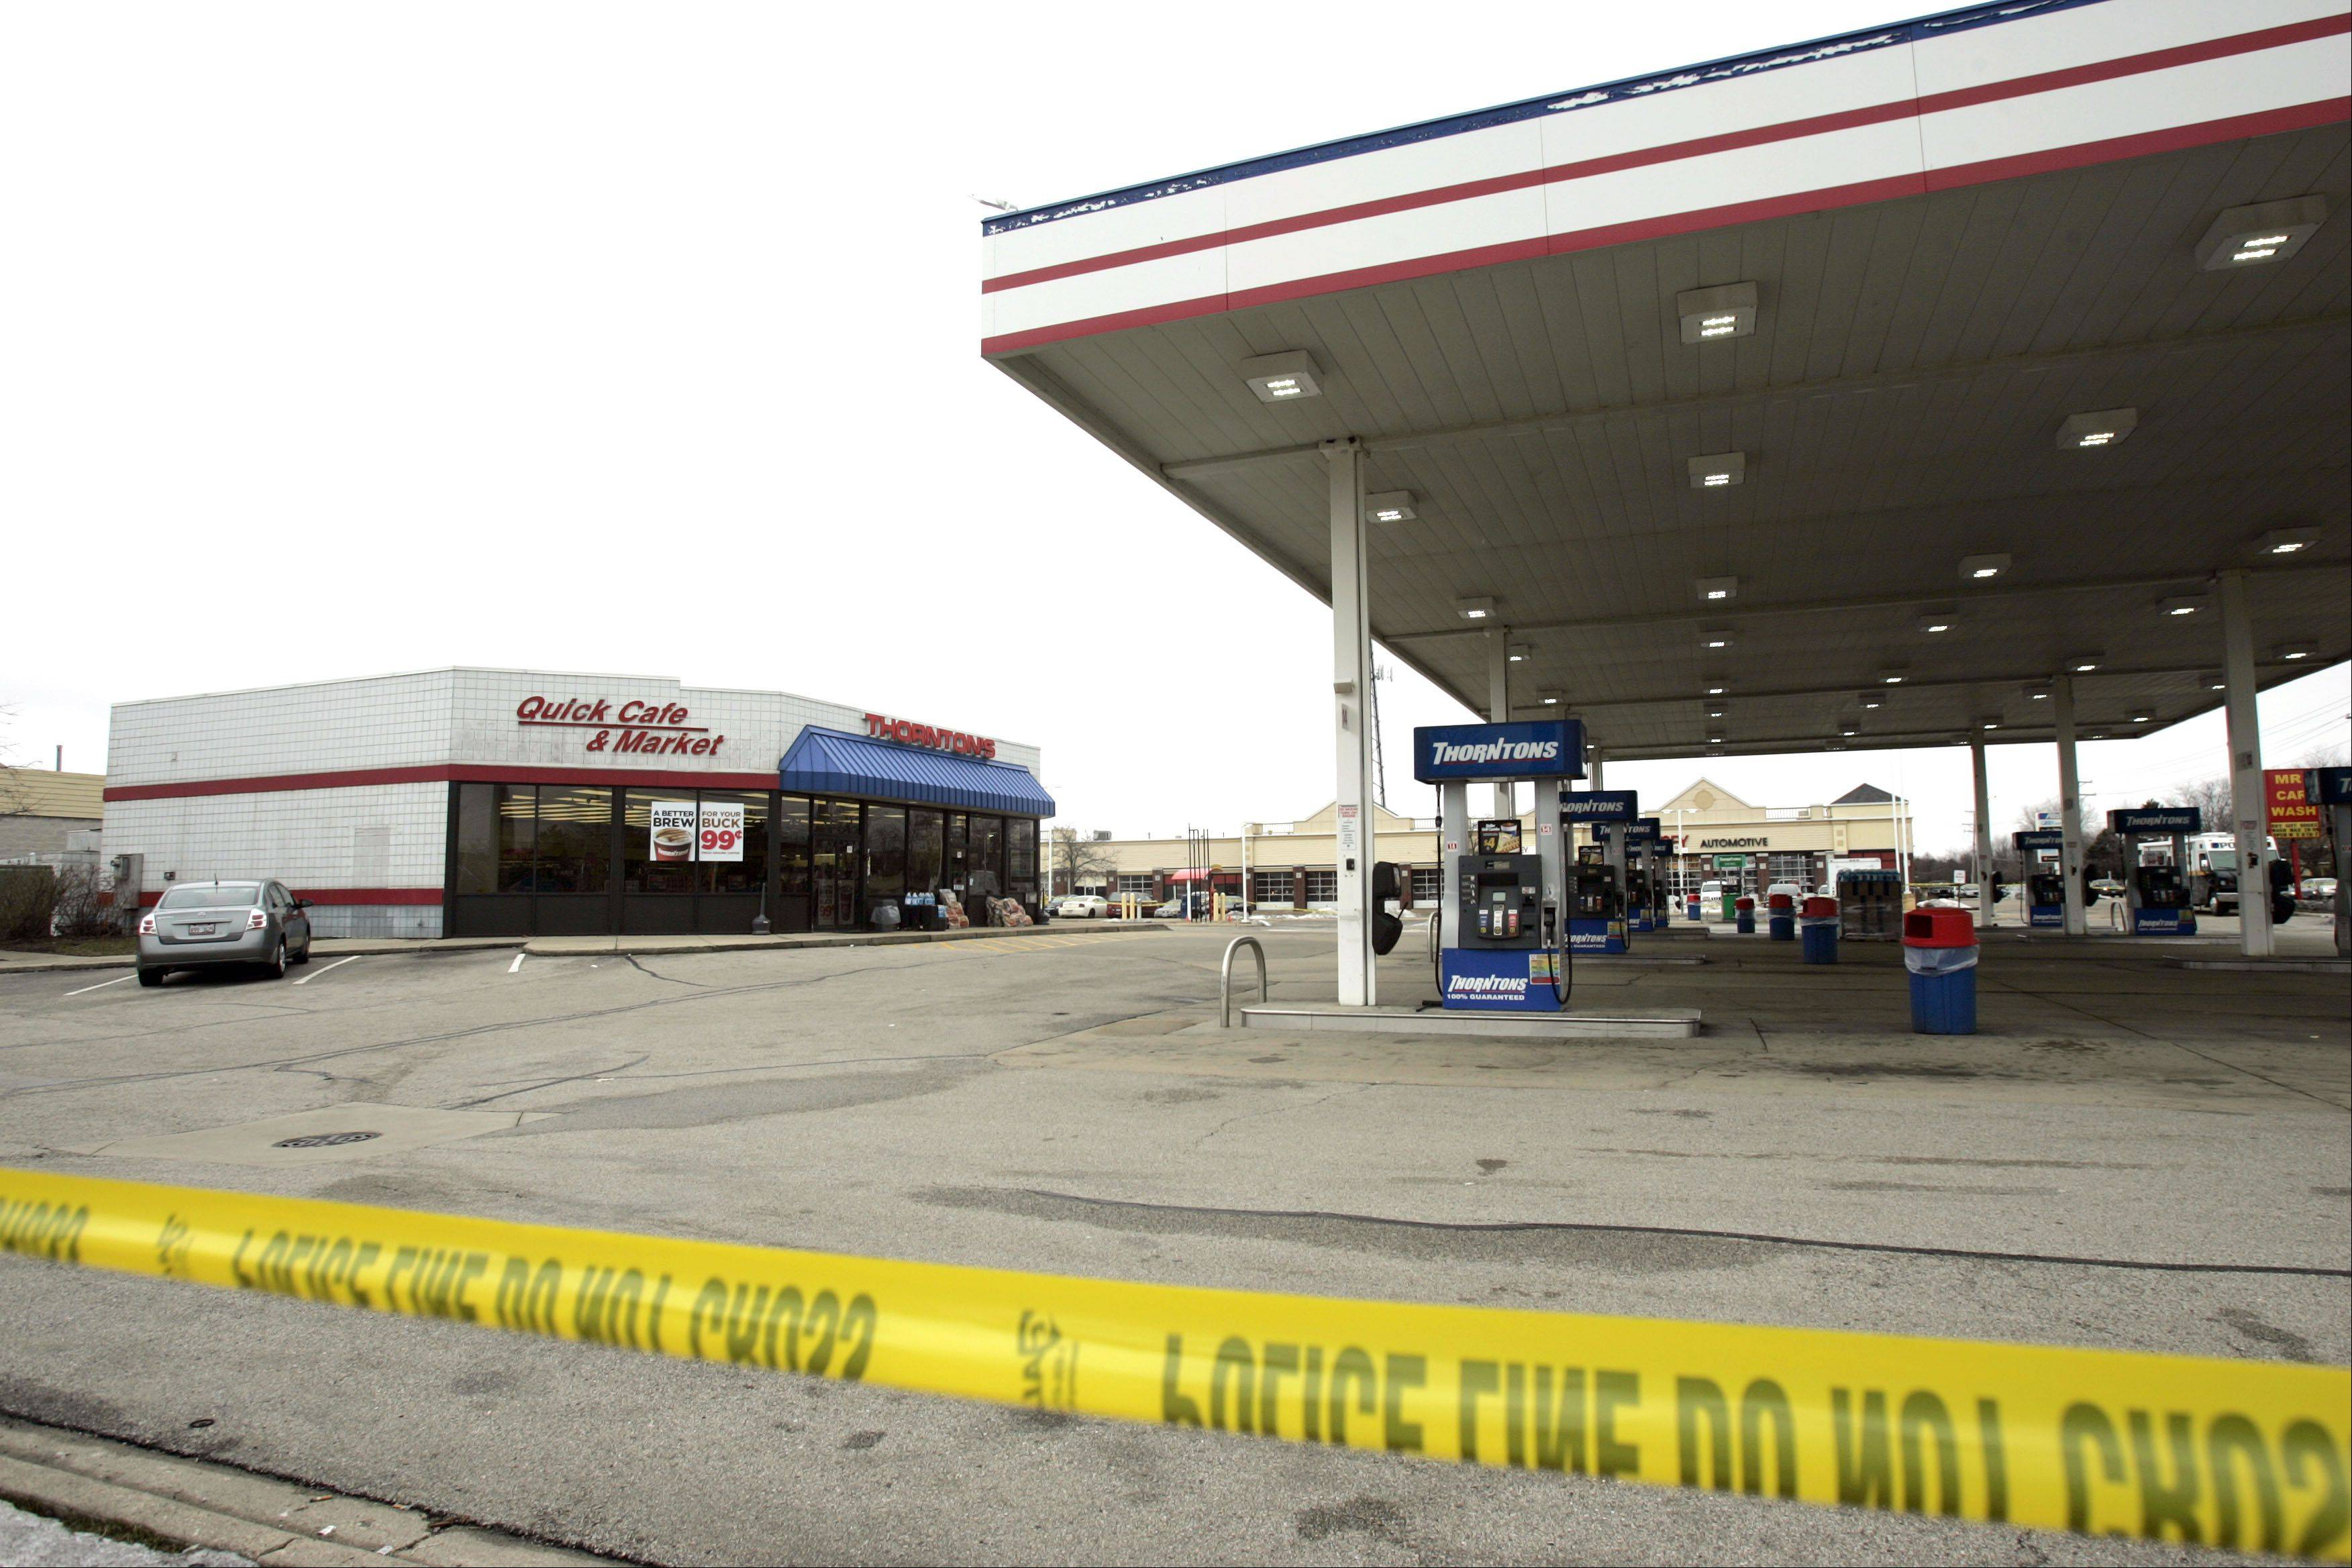 Police tape surrounds Thornton´s gas station at 2 N. Barrington Road in Streamwood where authorities say 24-year-old Anandkumar Jaiswal was stabbed to death in an apparent robbery. Family members say Jaiswal was a friendly young man who supported his family and hoped to attend college.